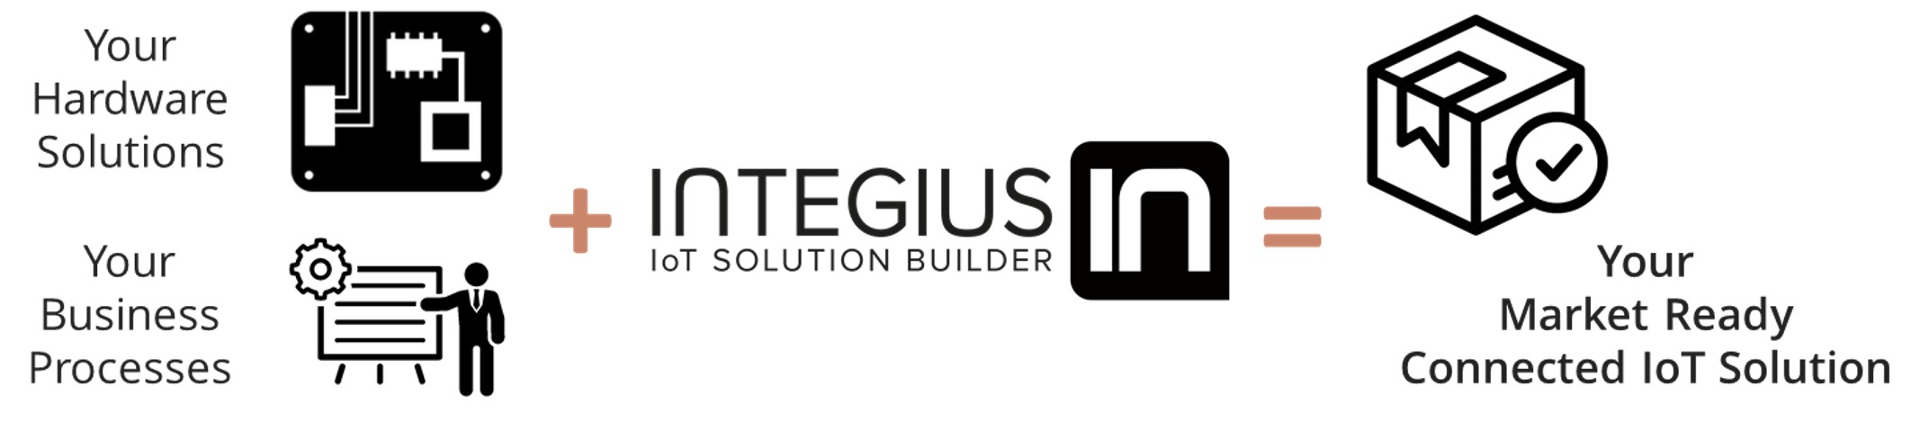 integius-market-ready-iot-solution-with-digital-ownership-of-any-building